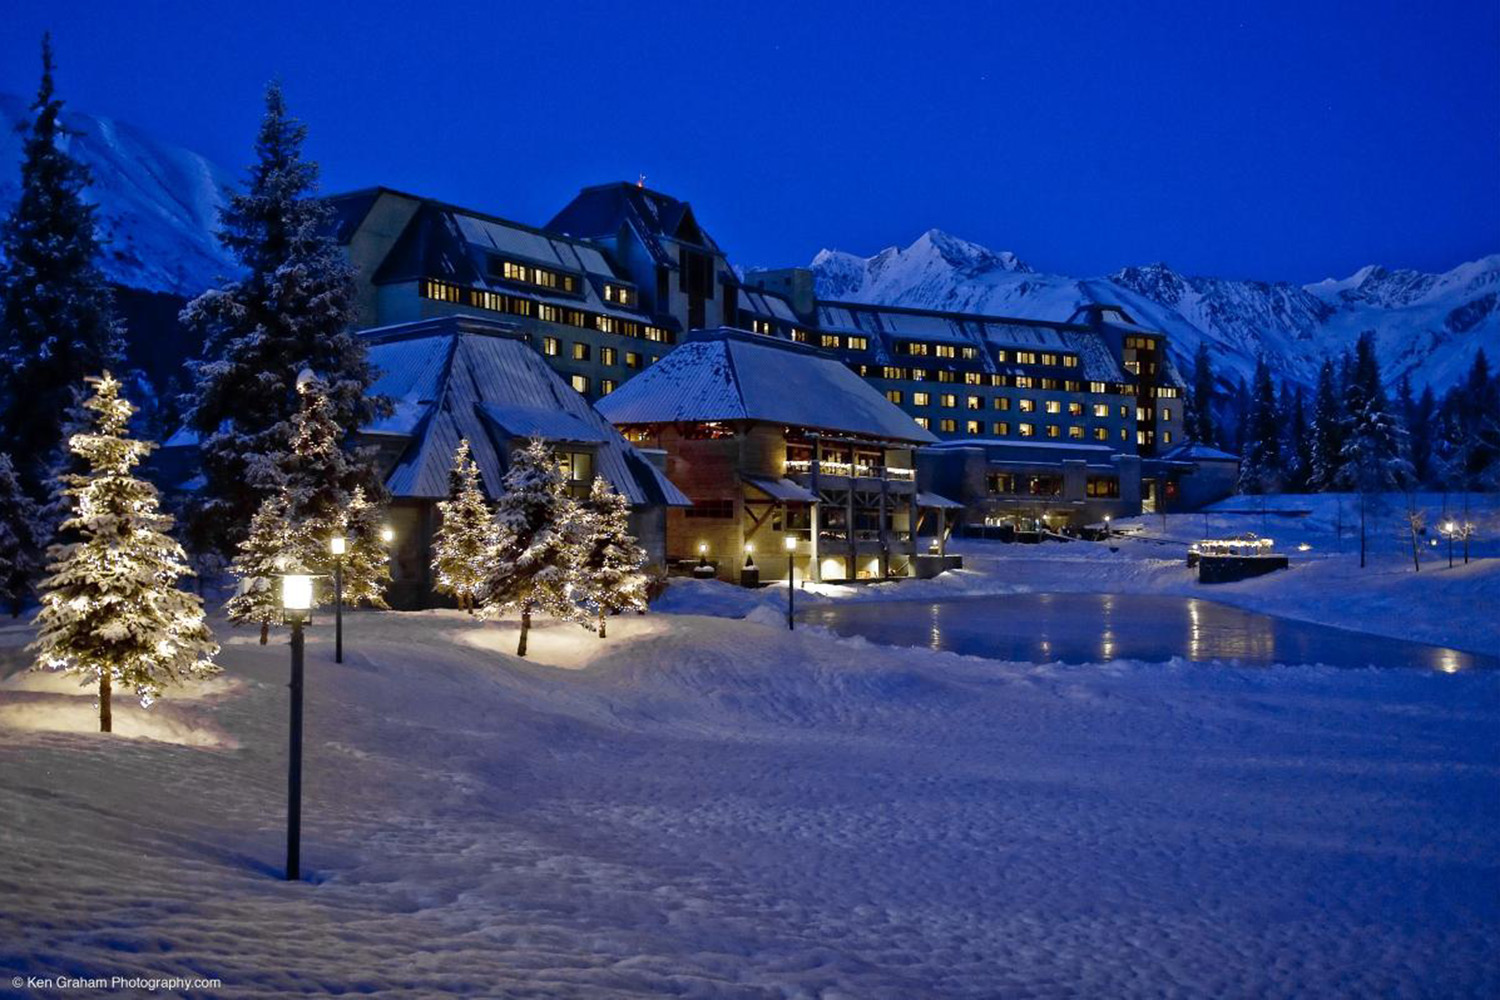 Stay at the luxurious Hotel Alyeska.